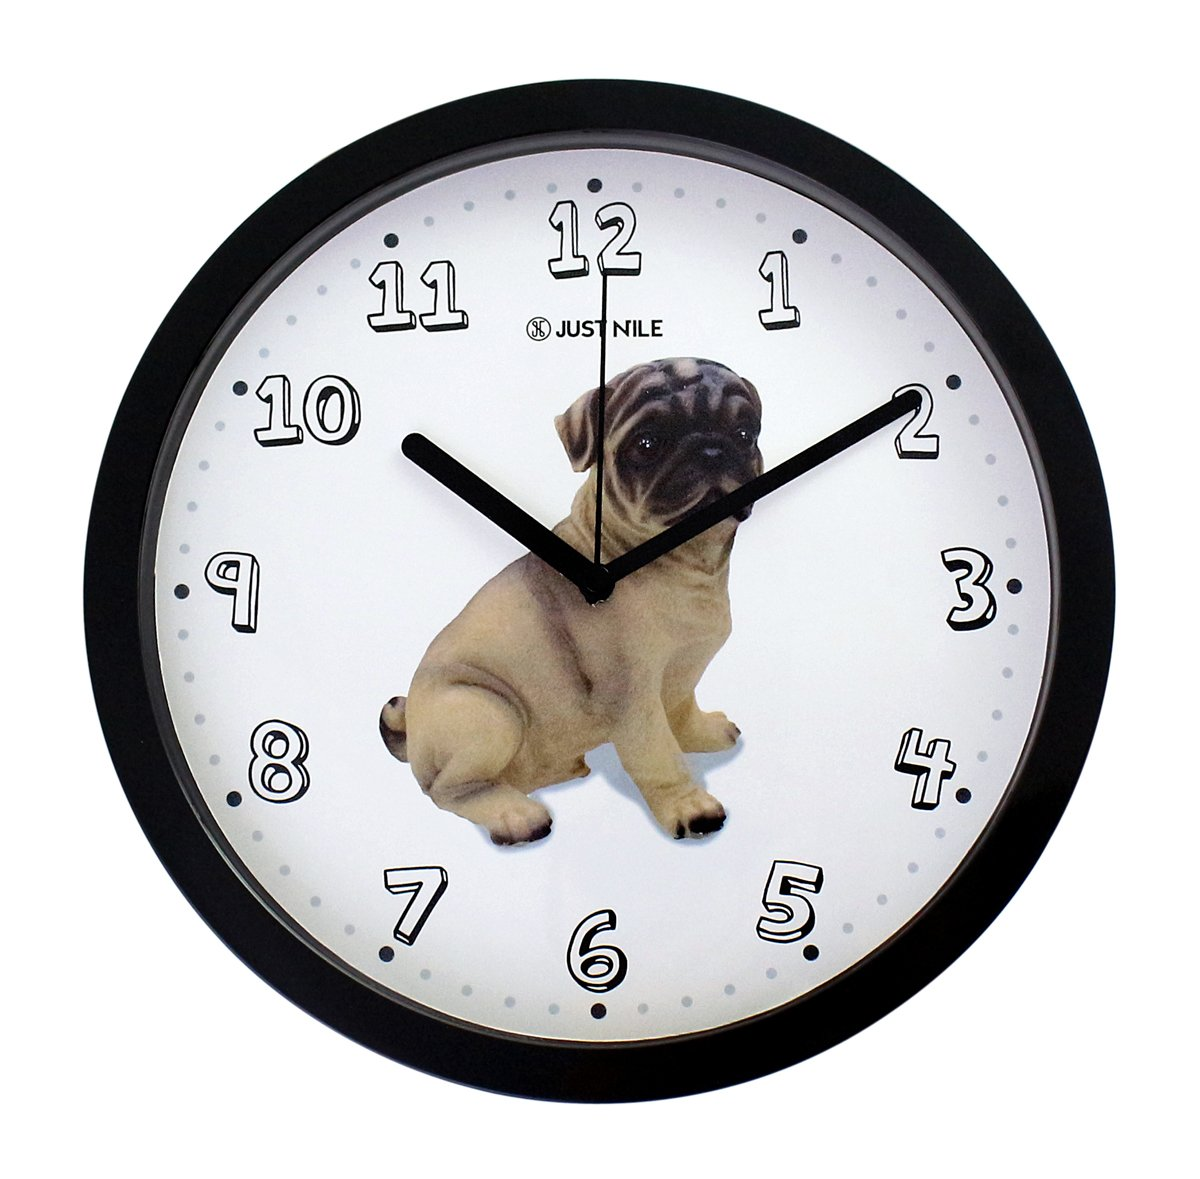 JustNile 10'' Cute Animal Round Quiet Sweep Movement Wall Clock, Black Frame and Black Hands, Pug